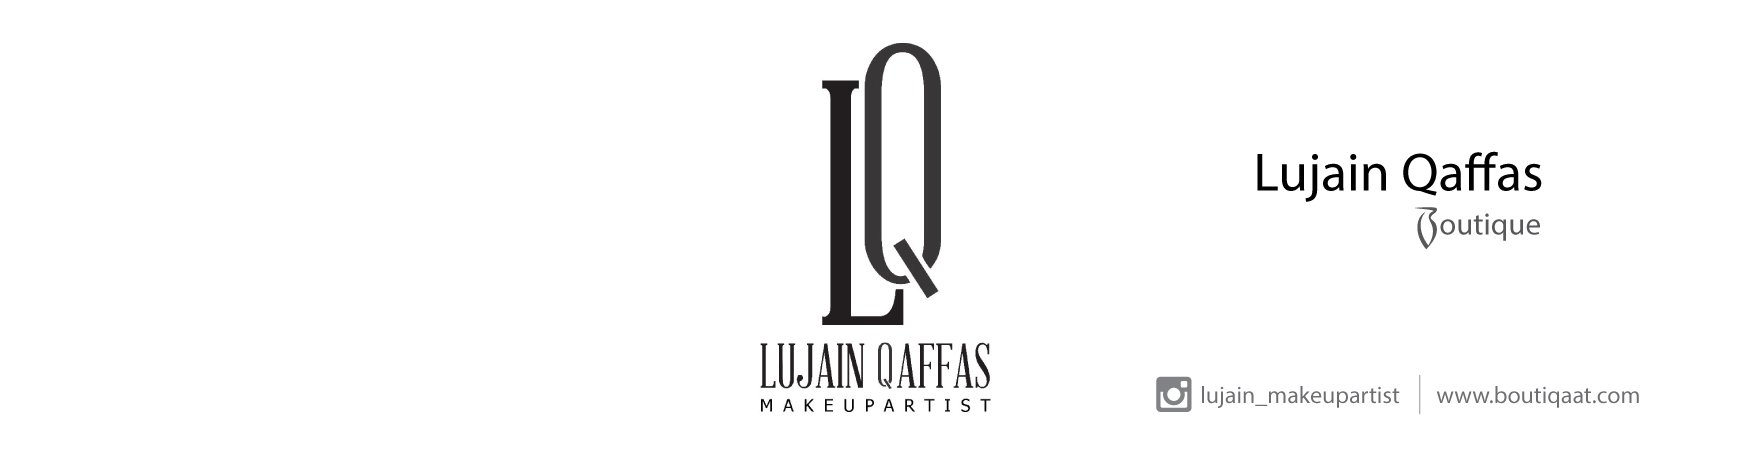 Lujain Qaffas Boutique